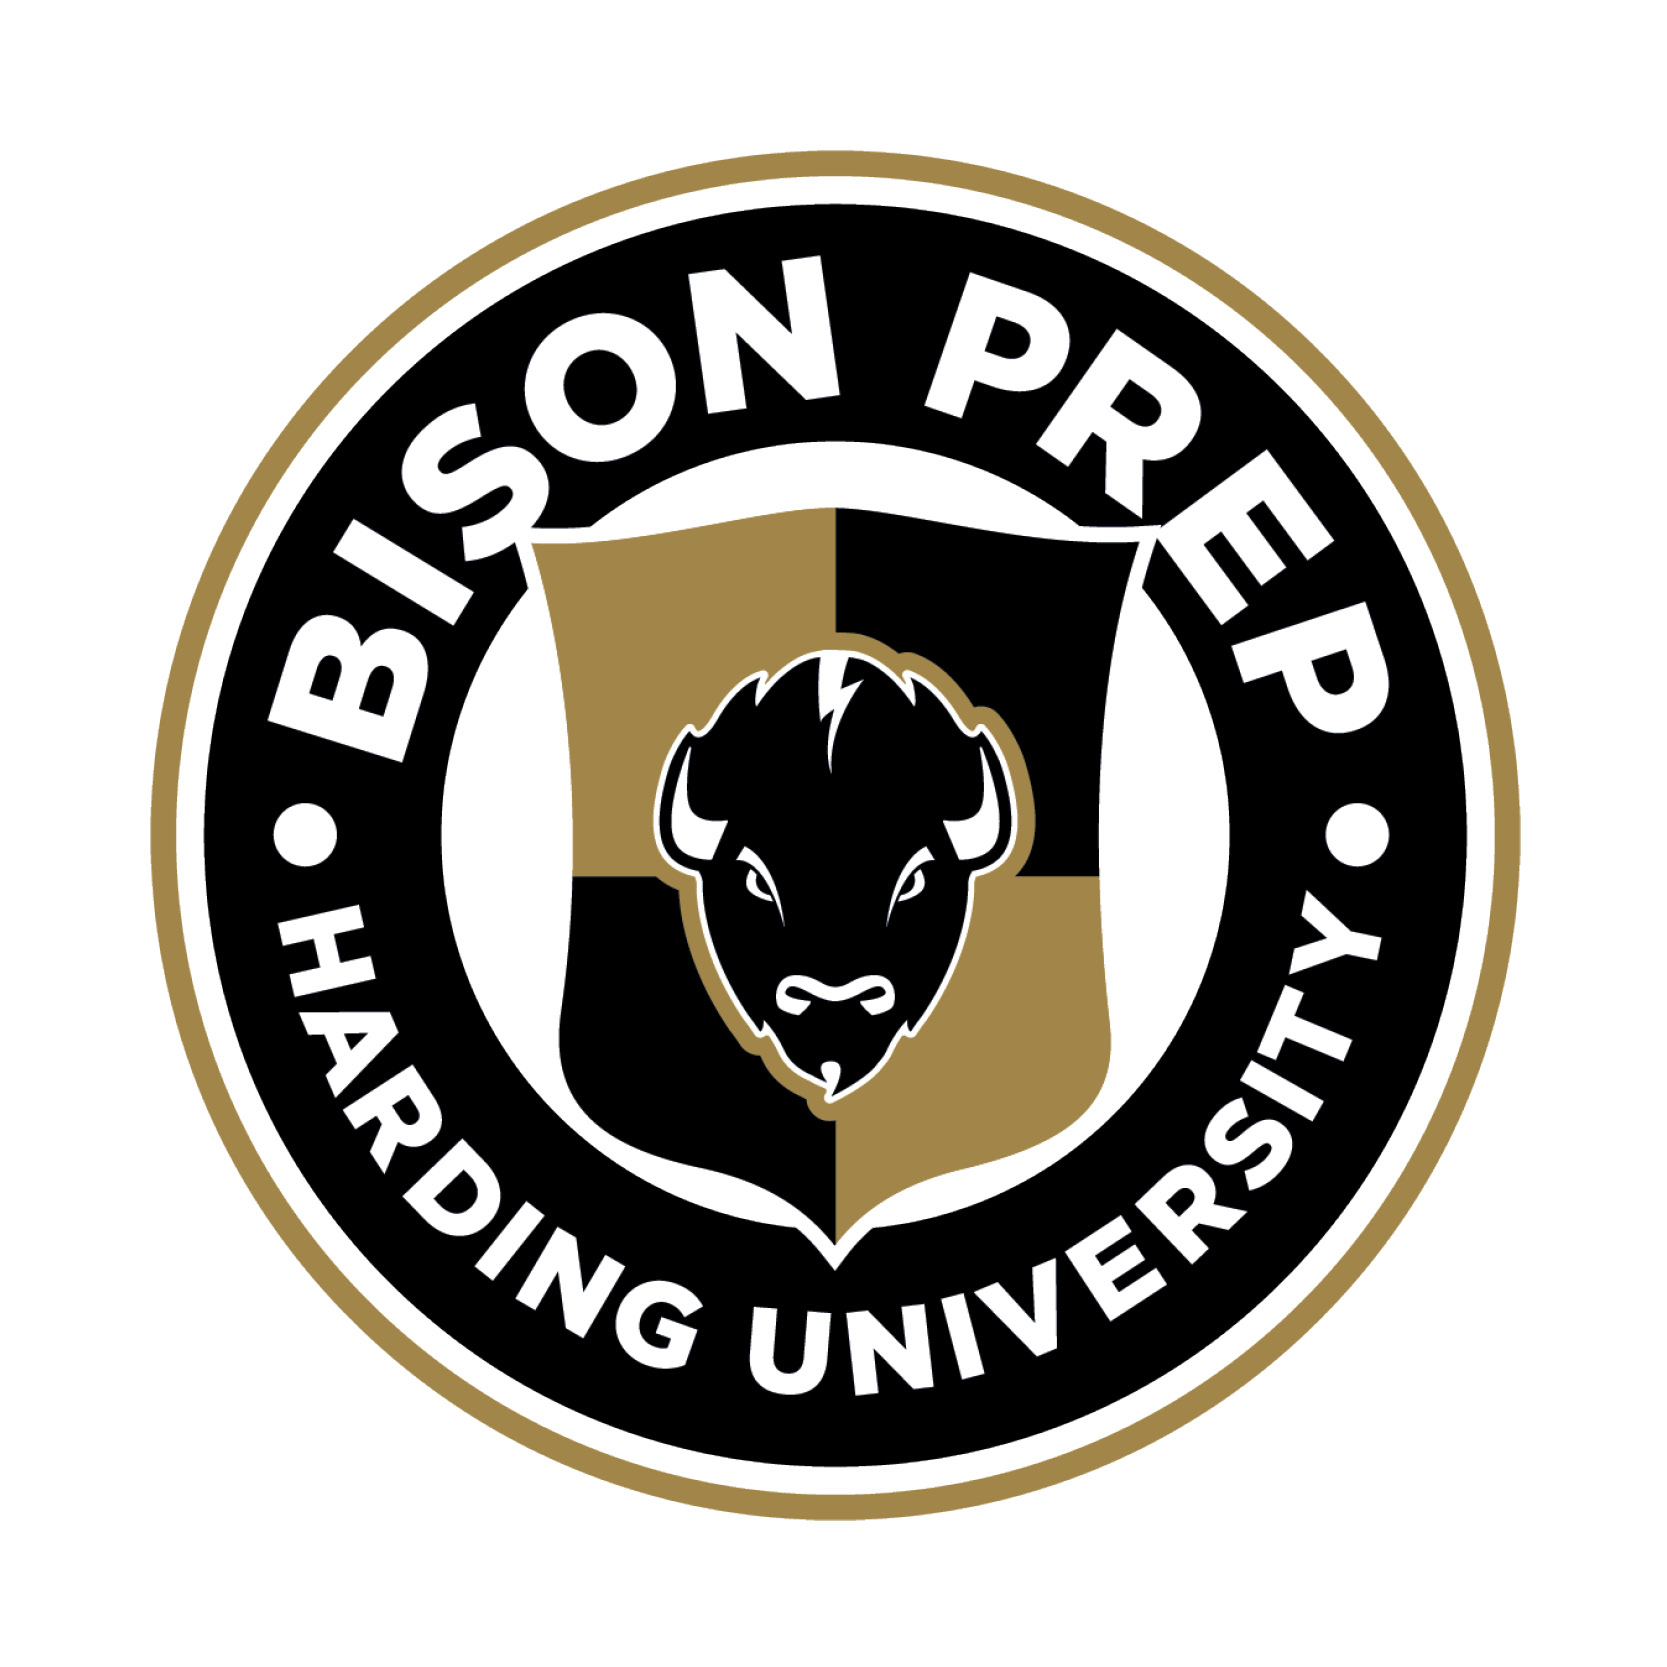 This is the logo for Bison Prep at Harding University.